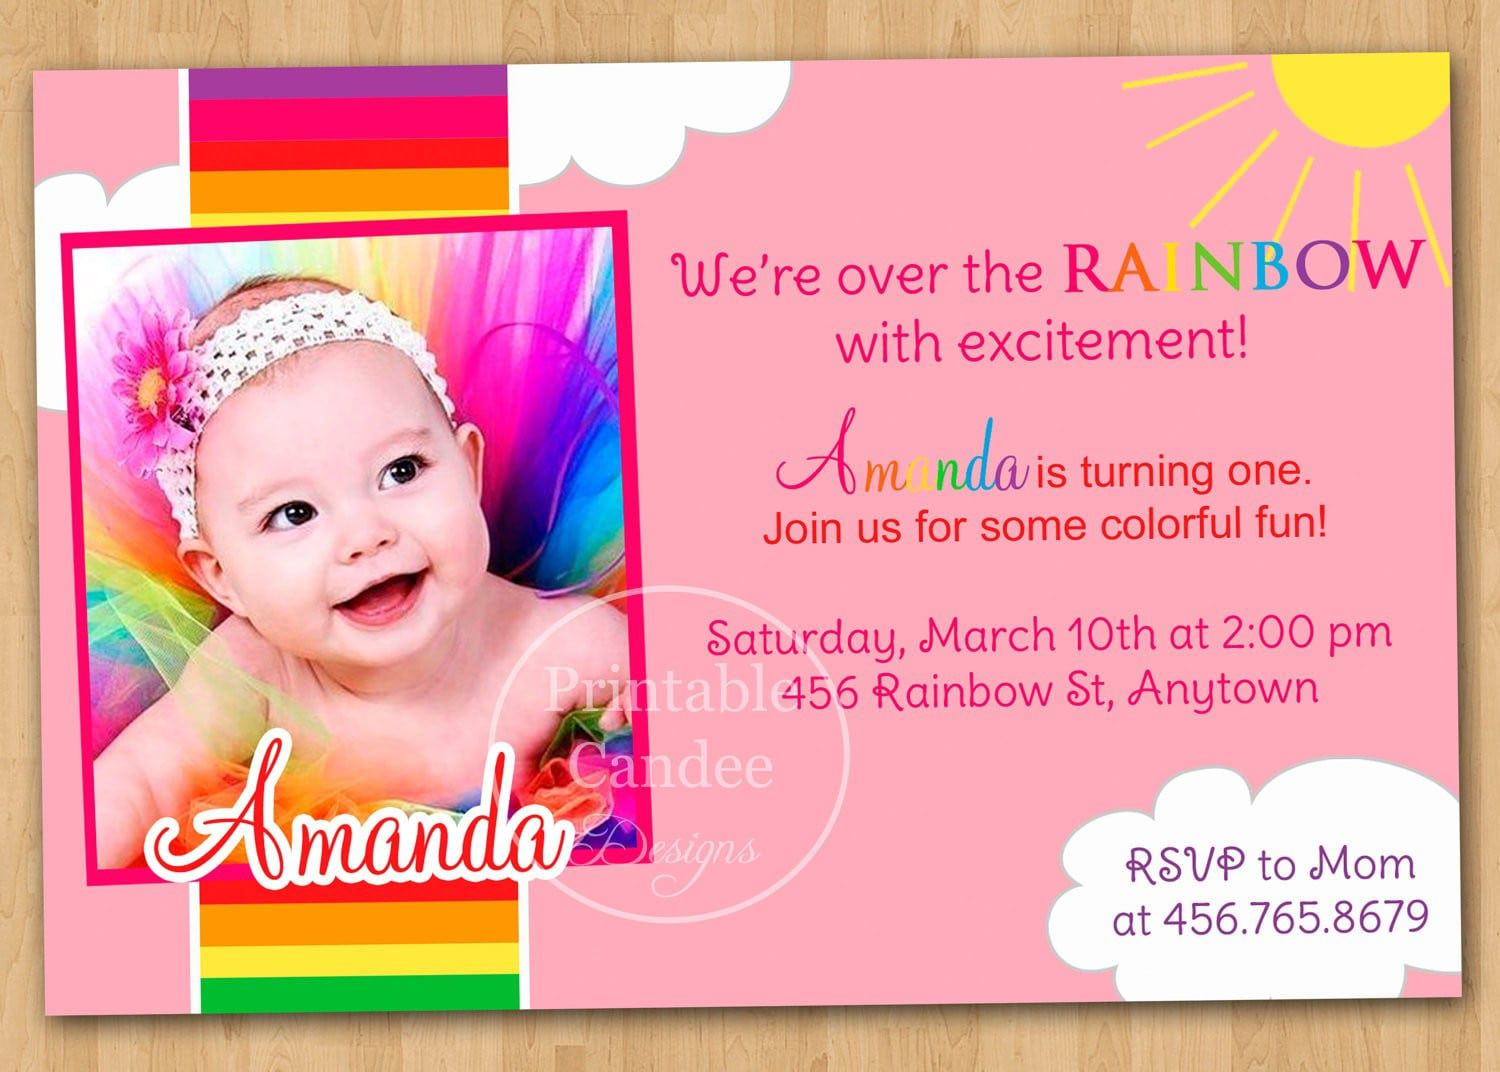 006 Awesome Free 1st Birthday Invitation Template For Word Image Full